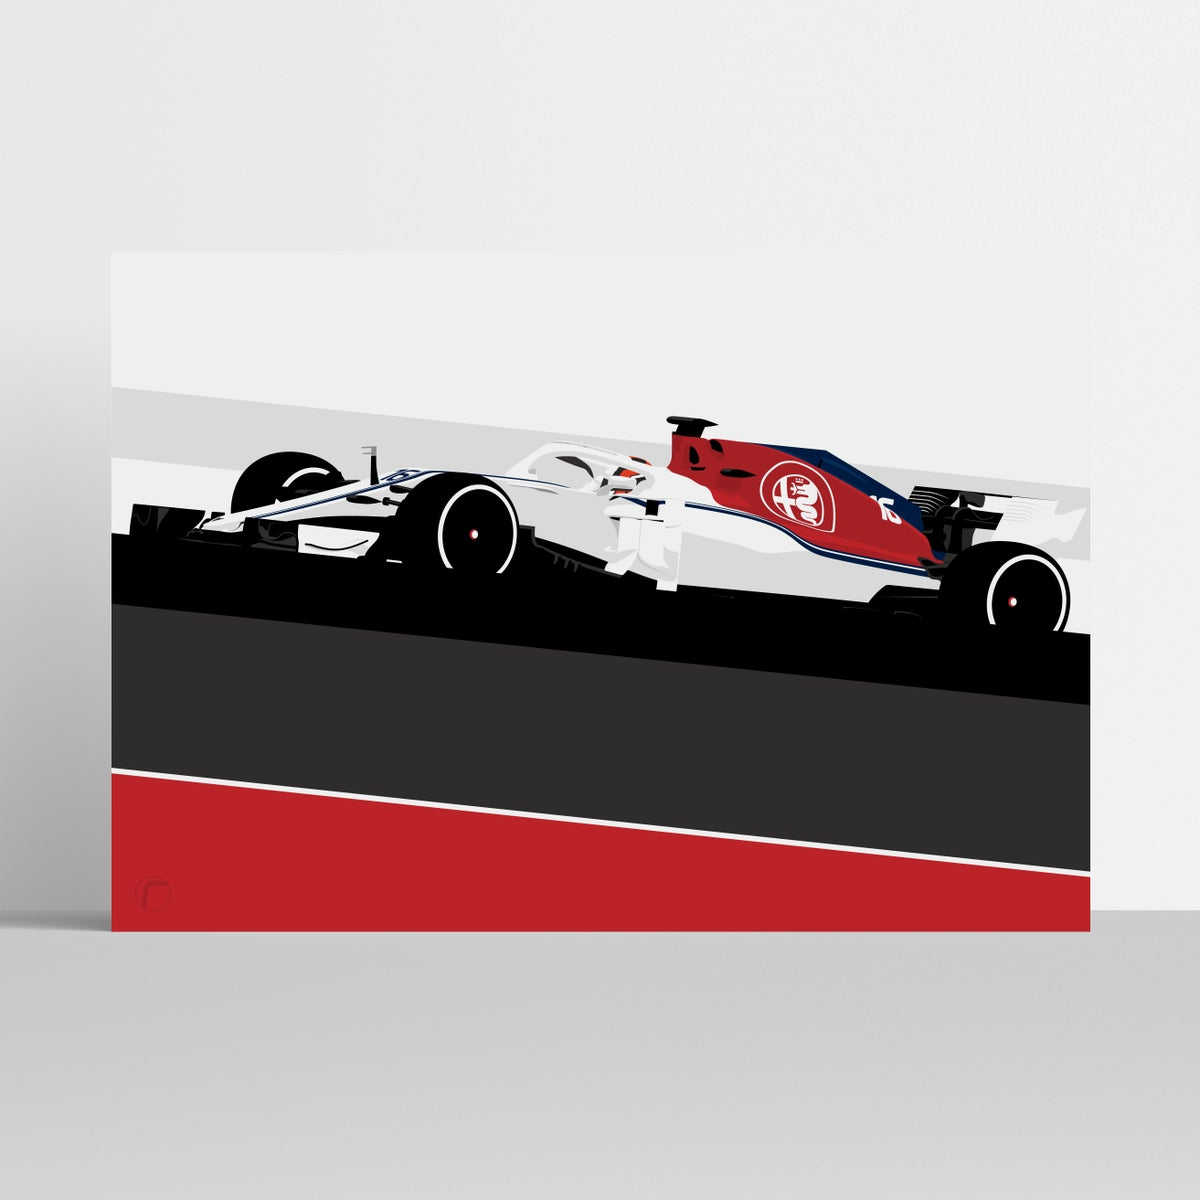 Image of Sauber F1 | Charles LeClerc